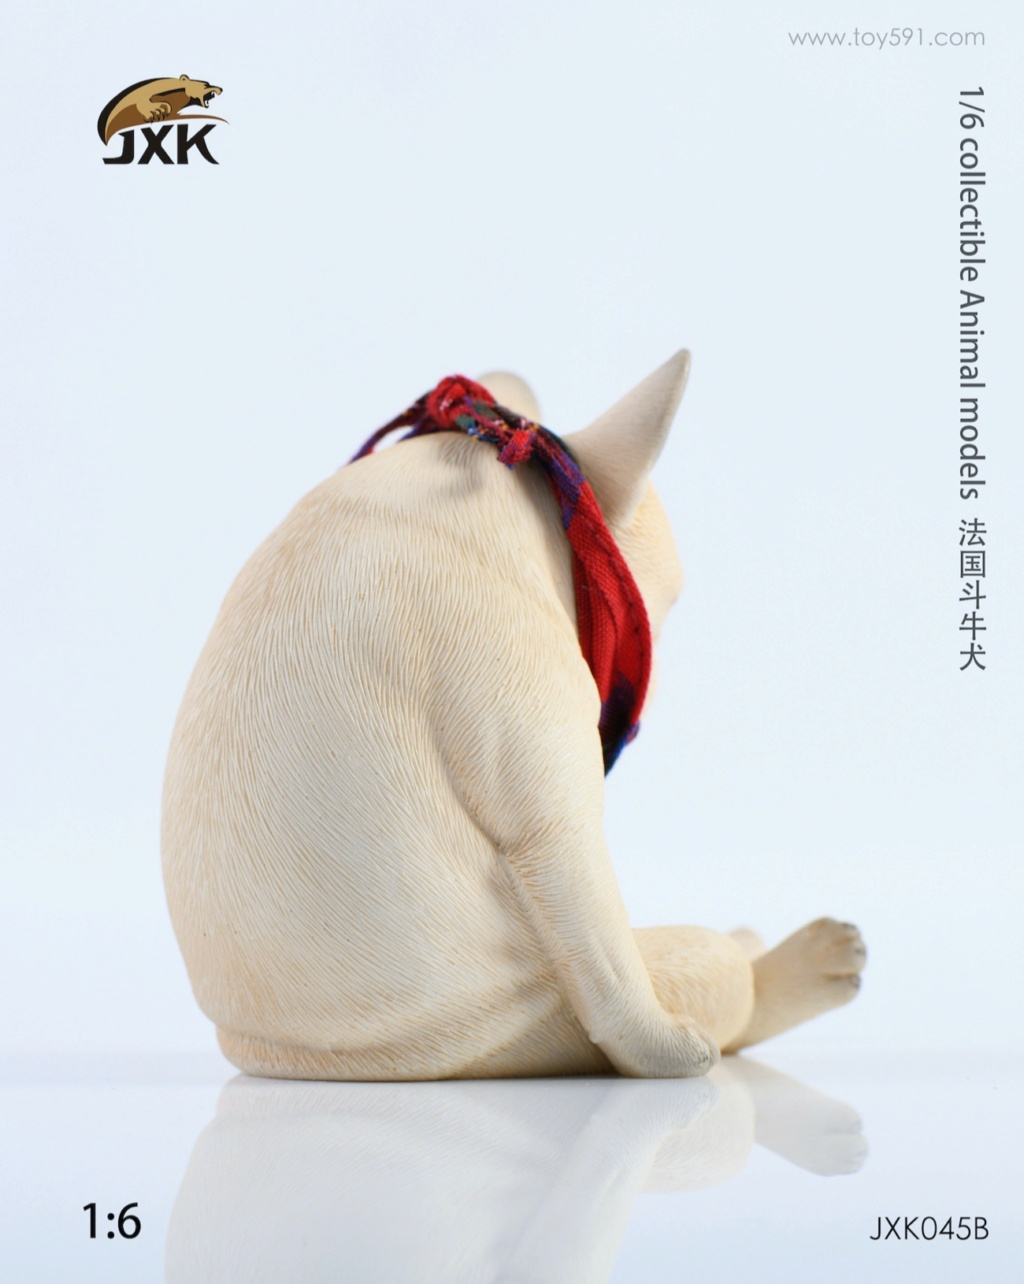 Dog - NEW PRODUCT: JXK 1/6 Decadent Dog JXK045 French Bulldog + Scarf 05251010